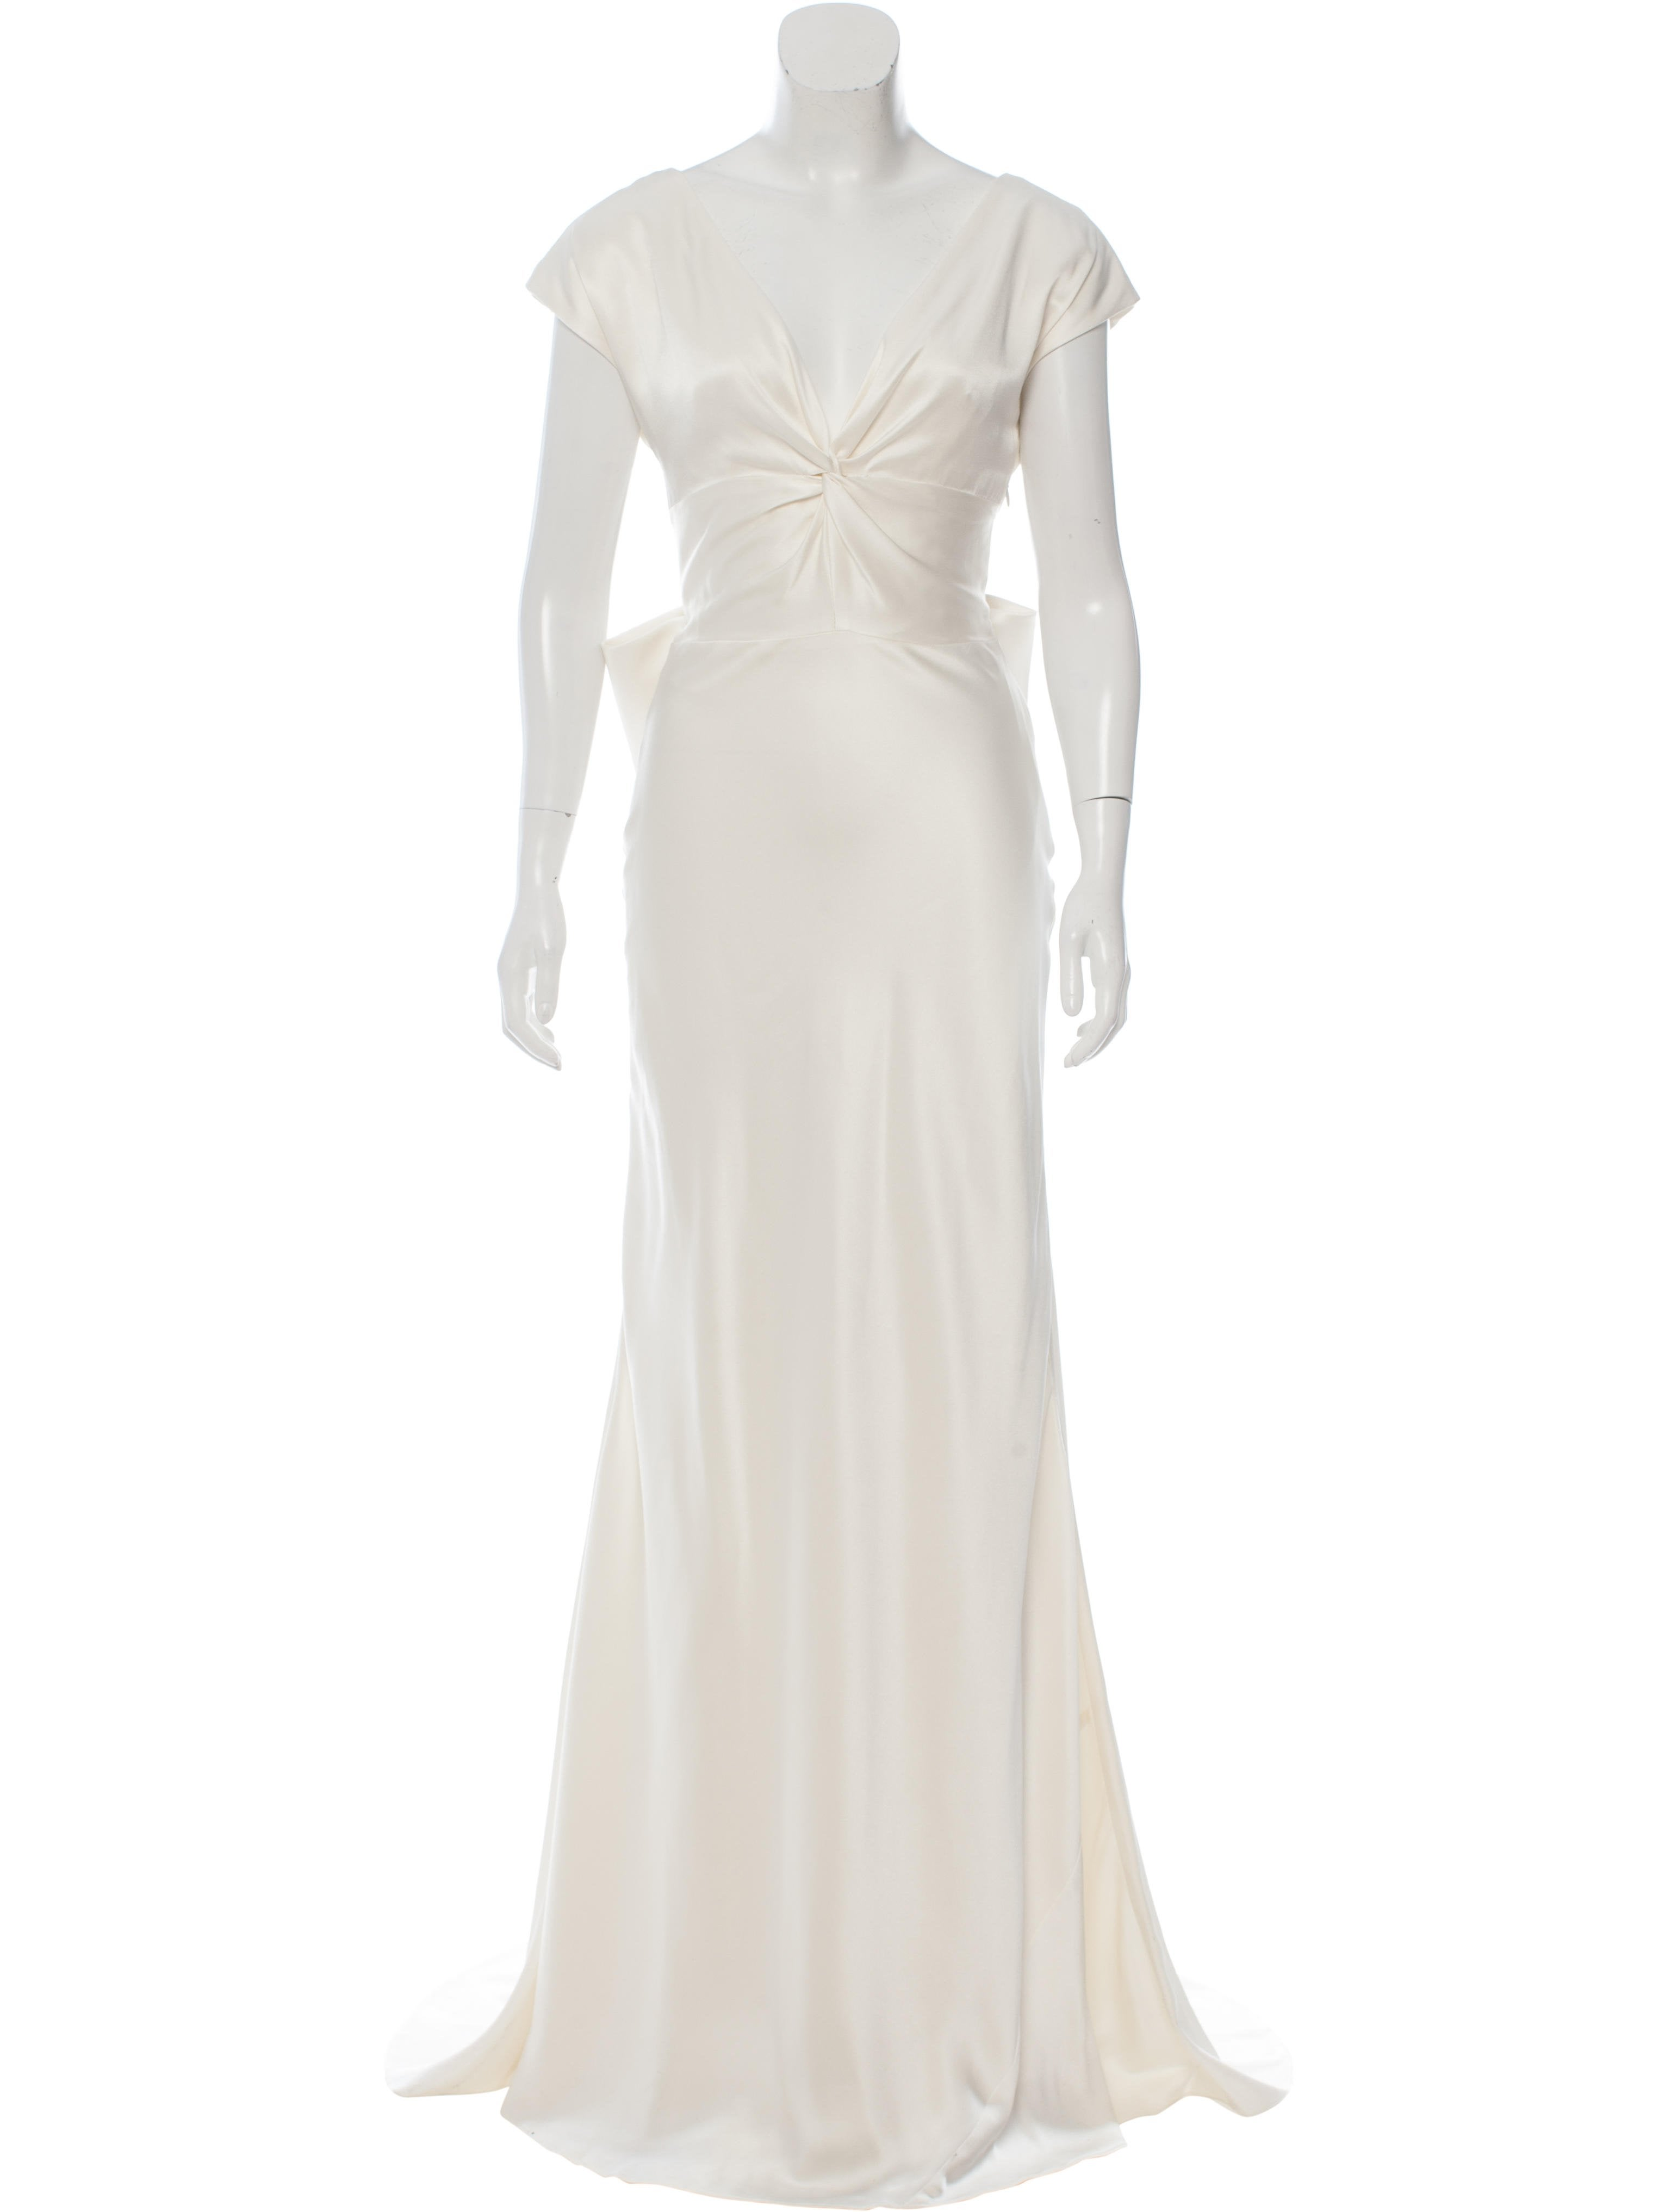 Nicole Miller Cassandra Silk Wedding Gown w/ Tags - Clothing ...